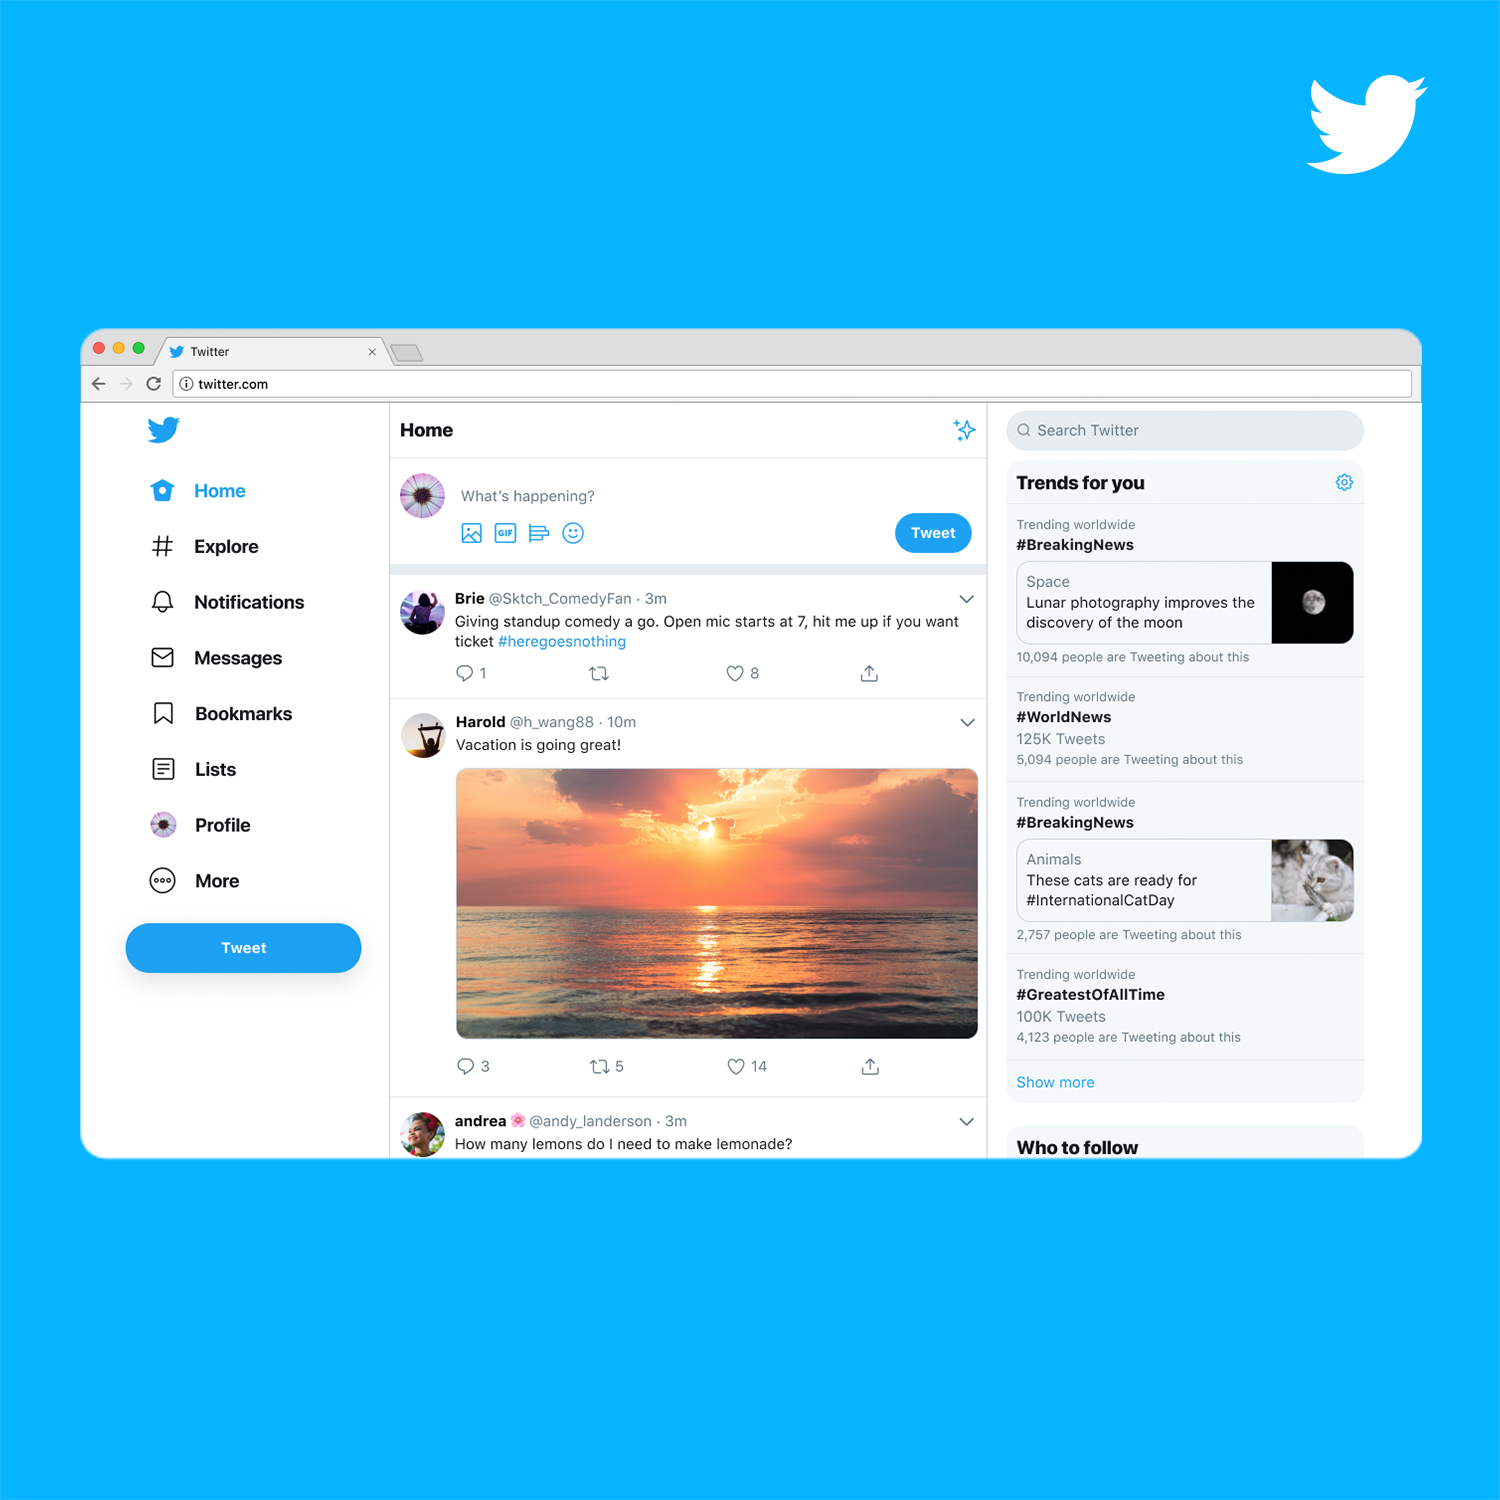 Introducing a new Twitter.com